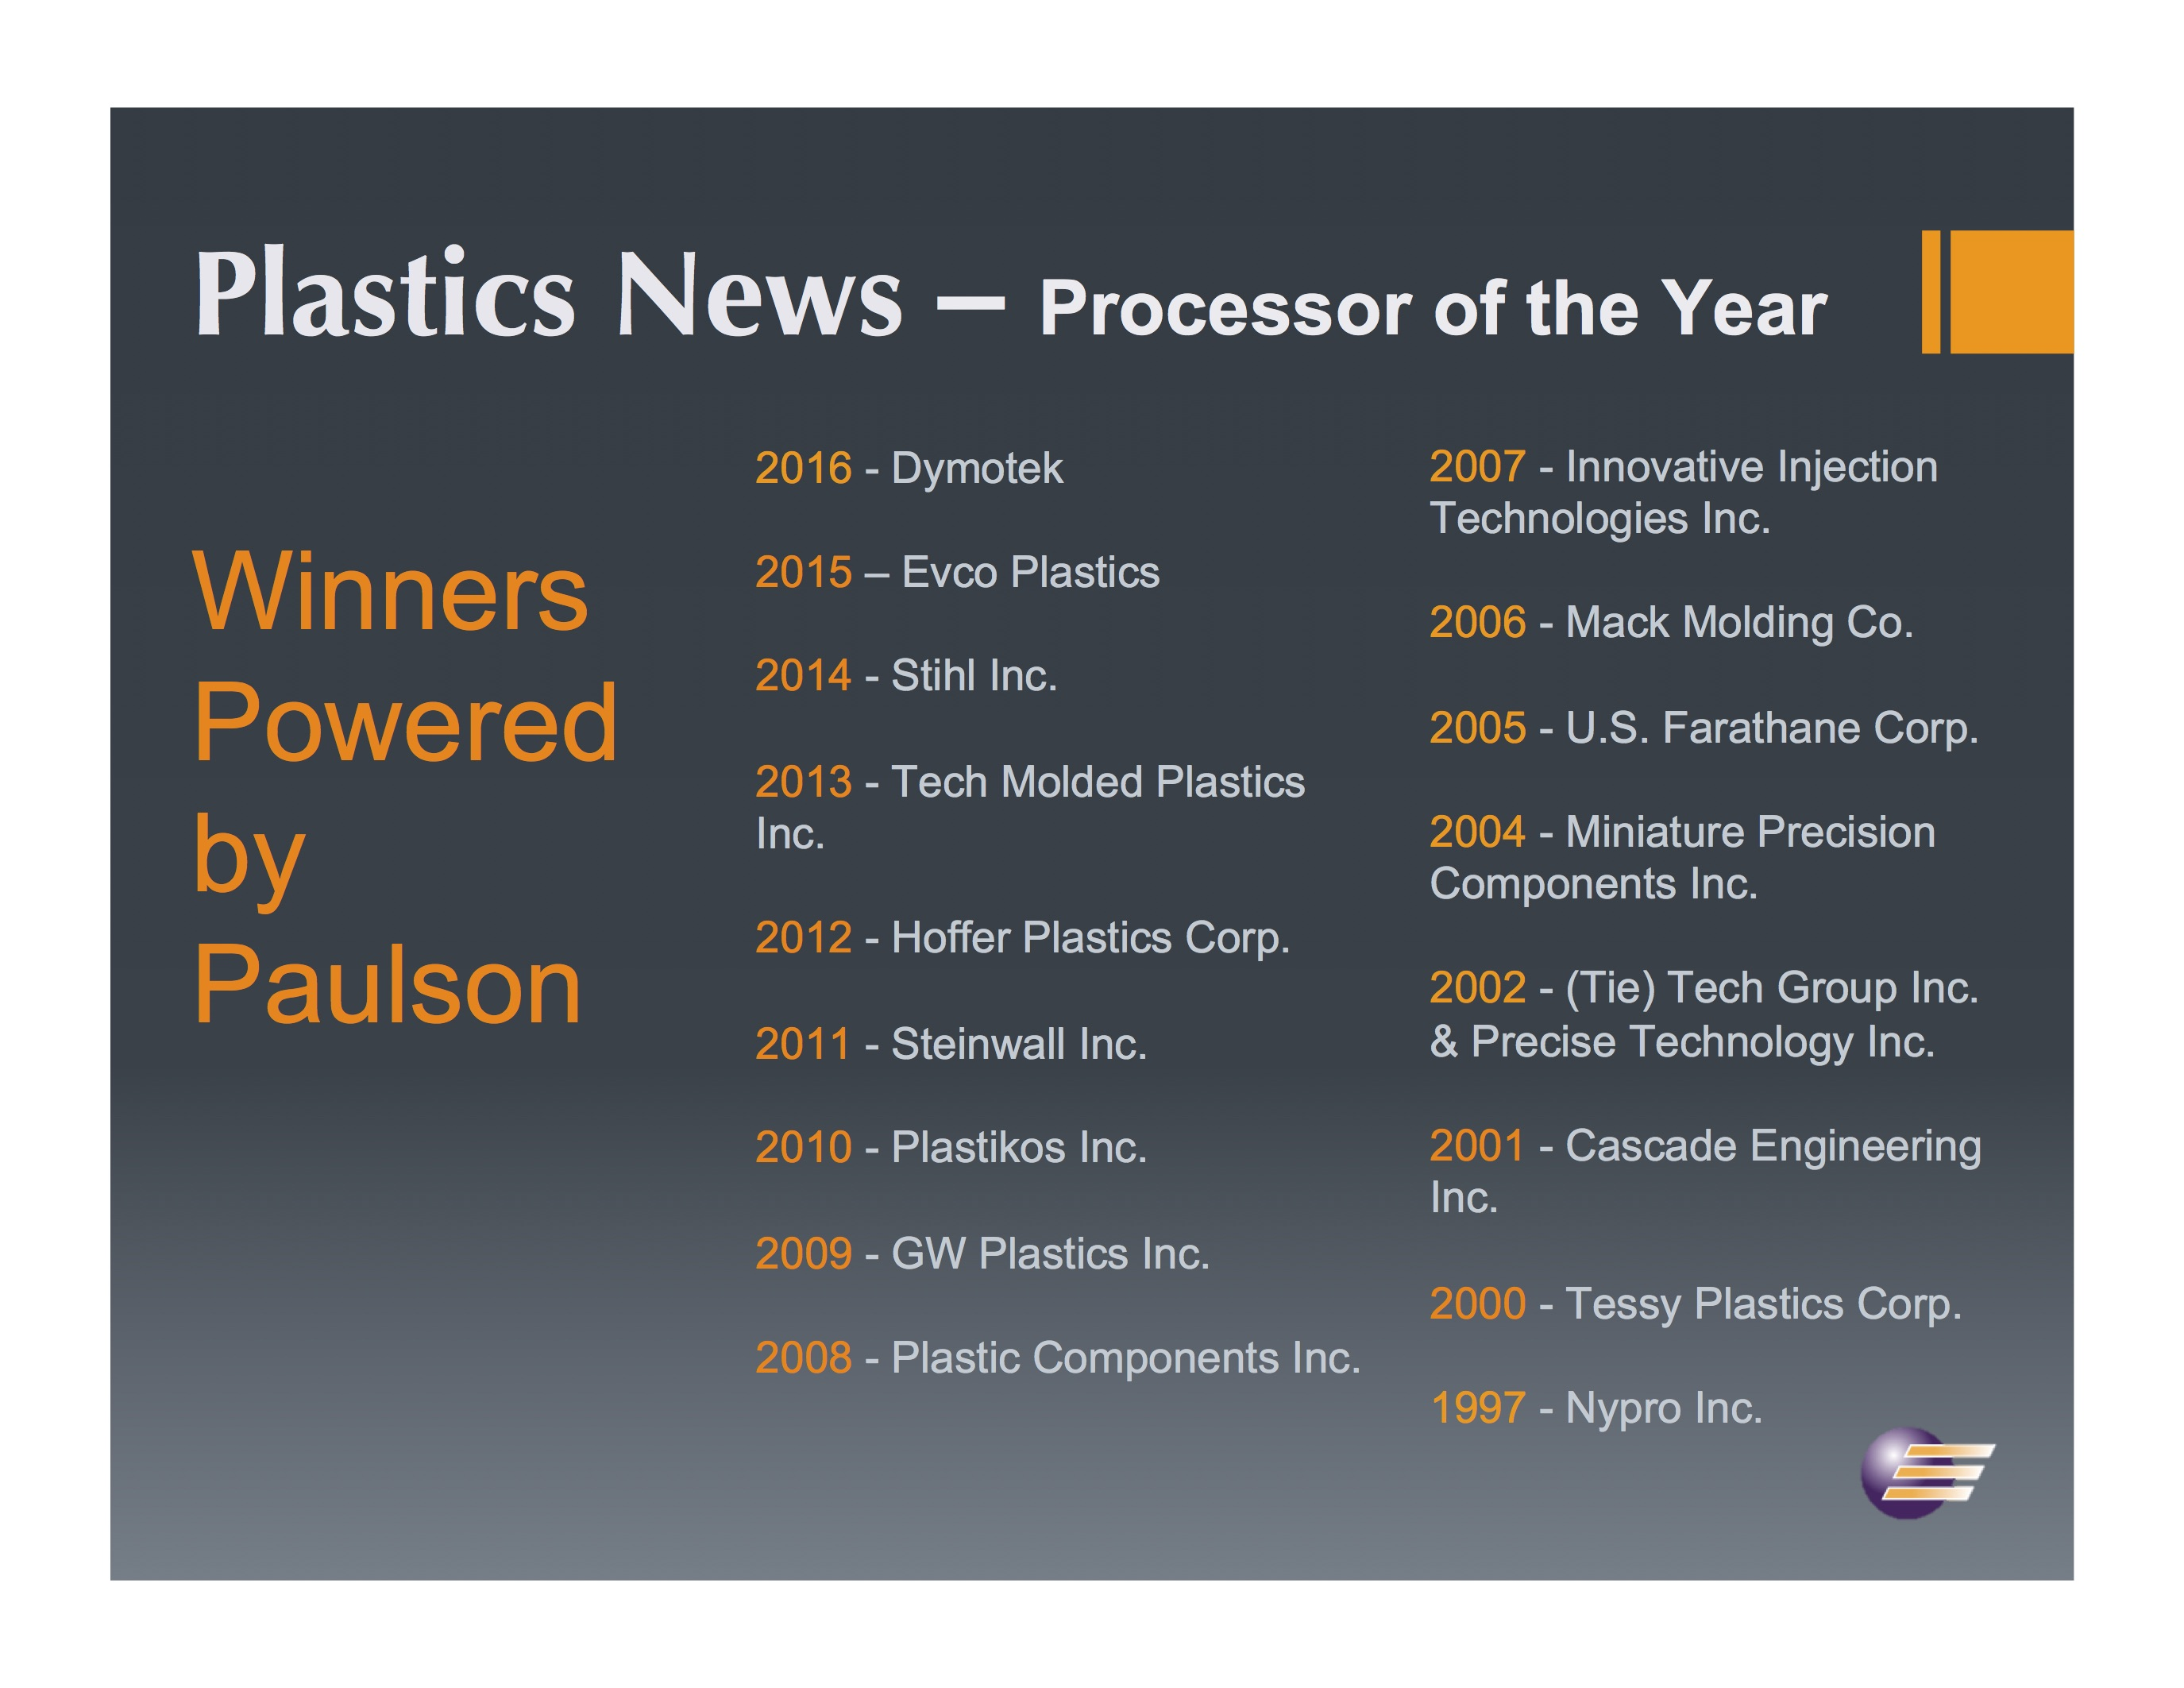 Paulson Customer Dymotek is 2017 Processor of the Year